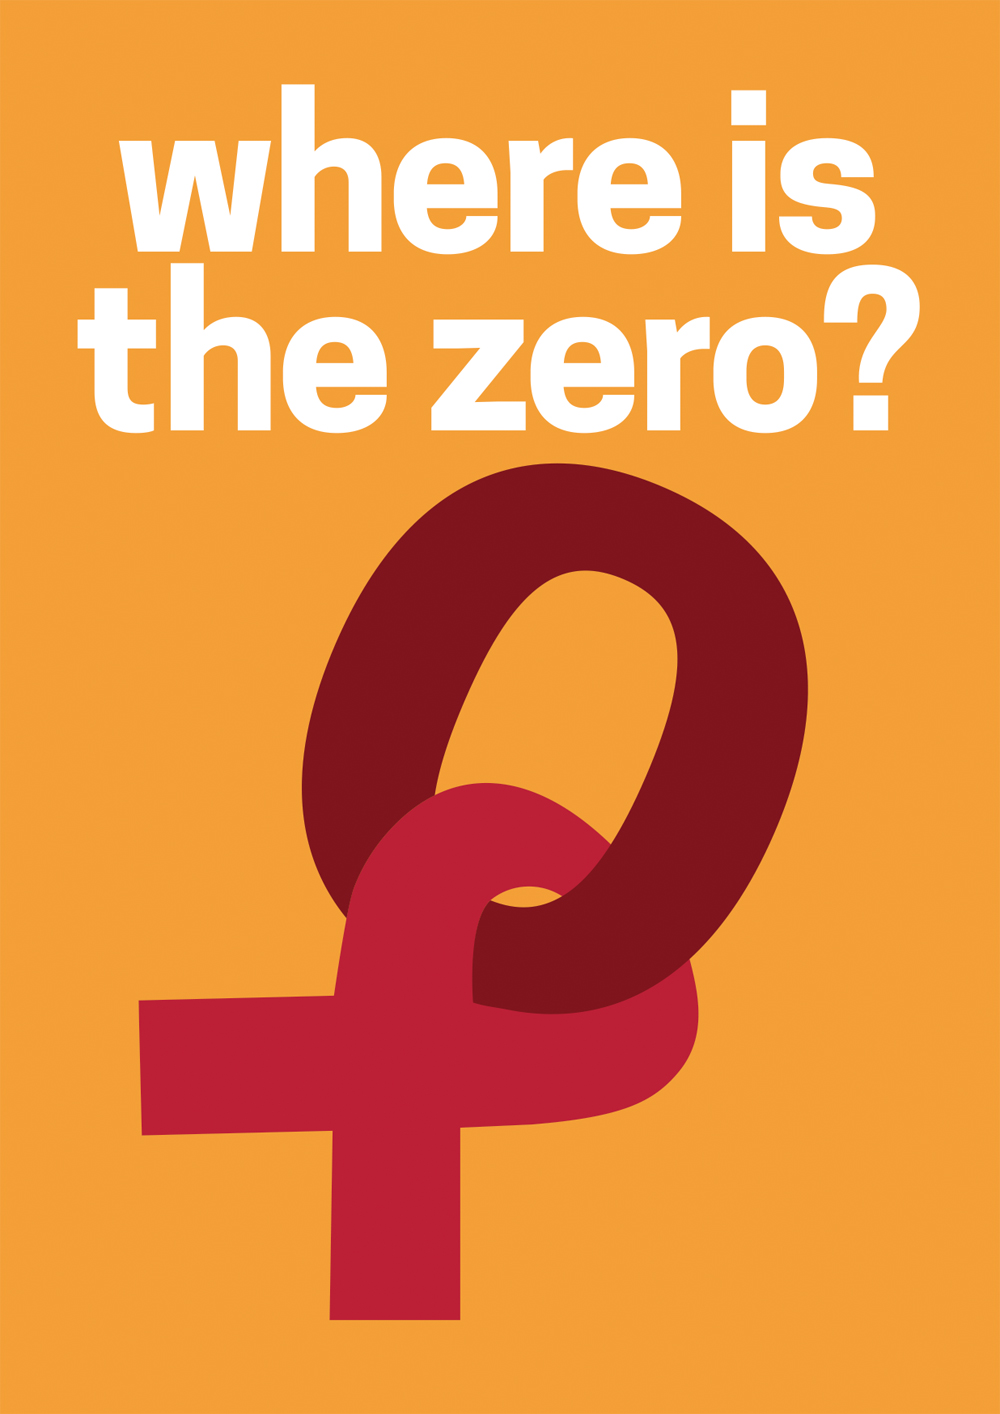 Where is the ZERO?